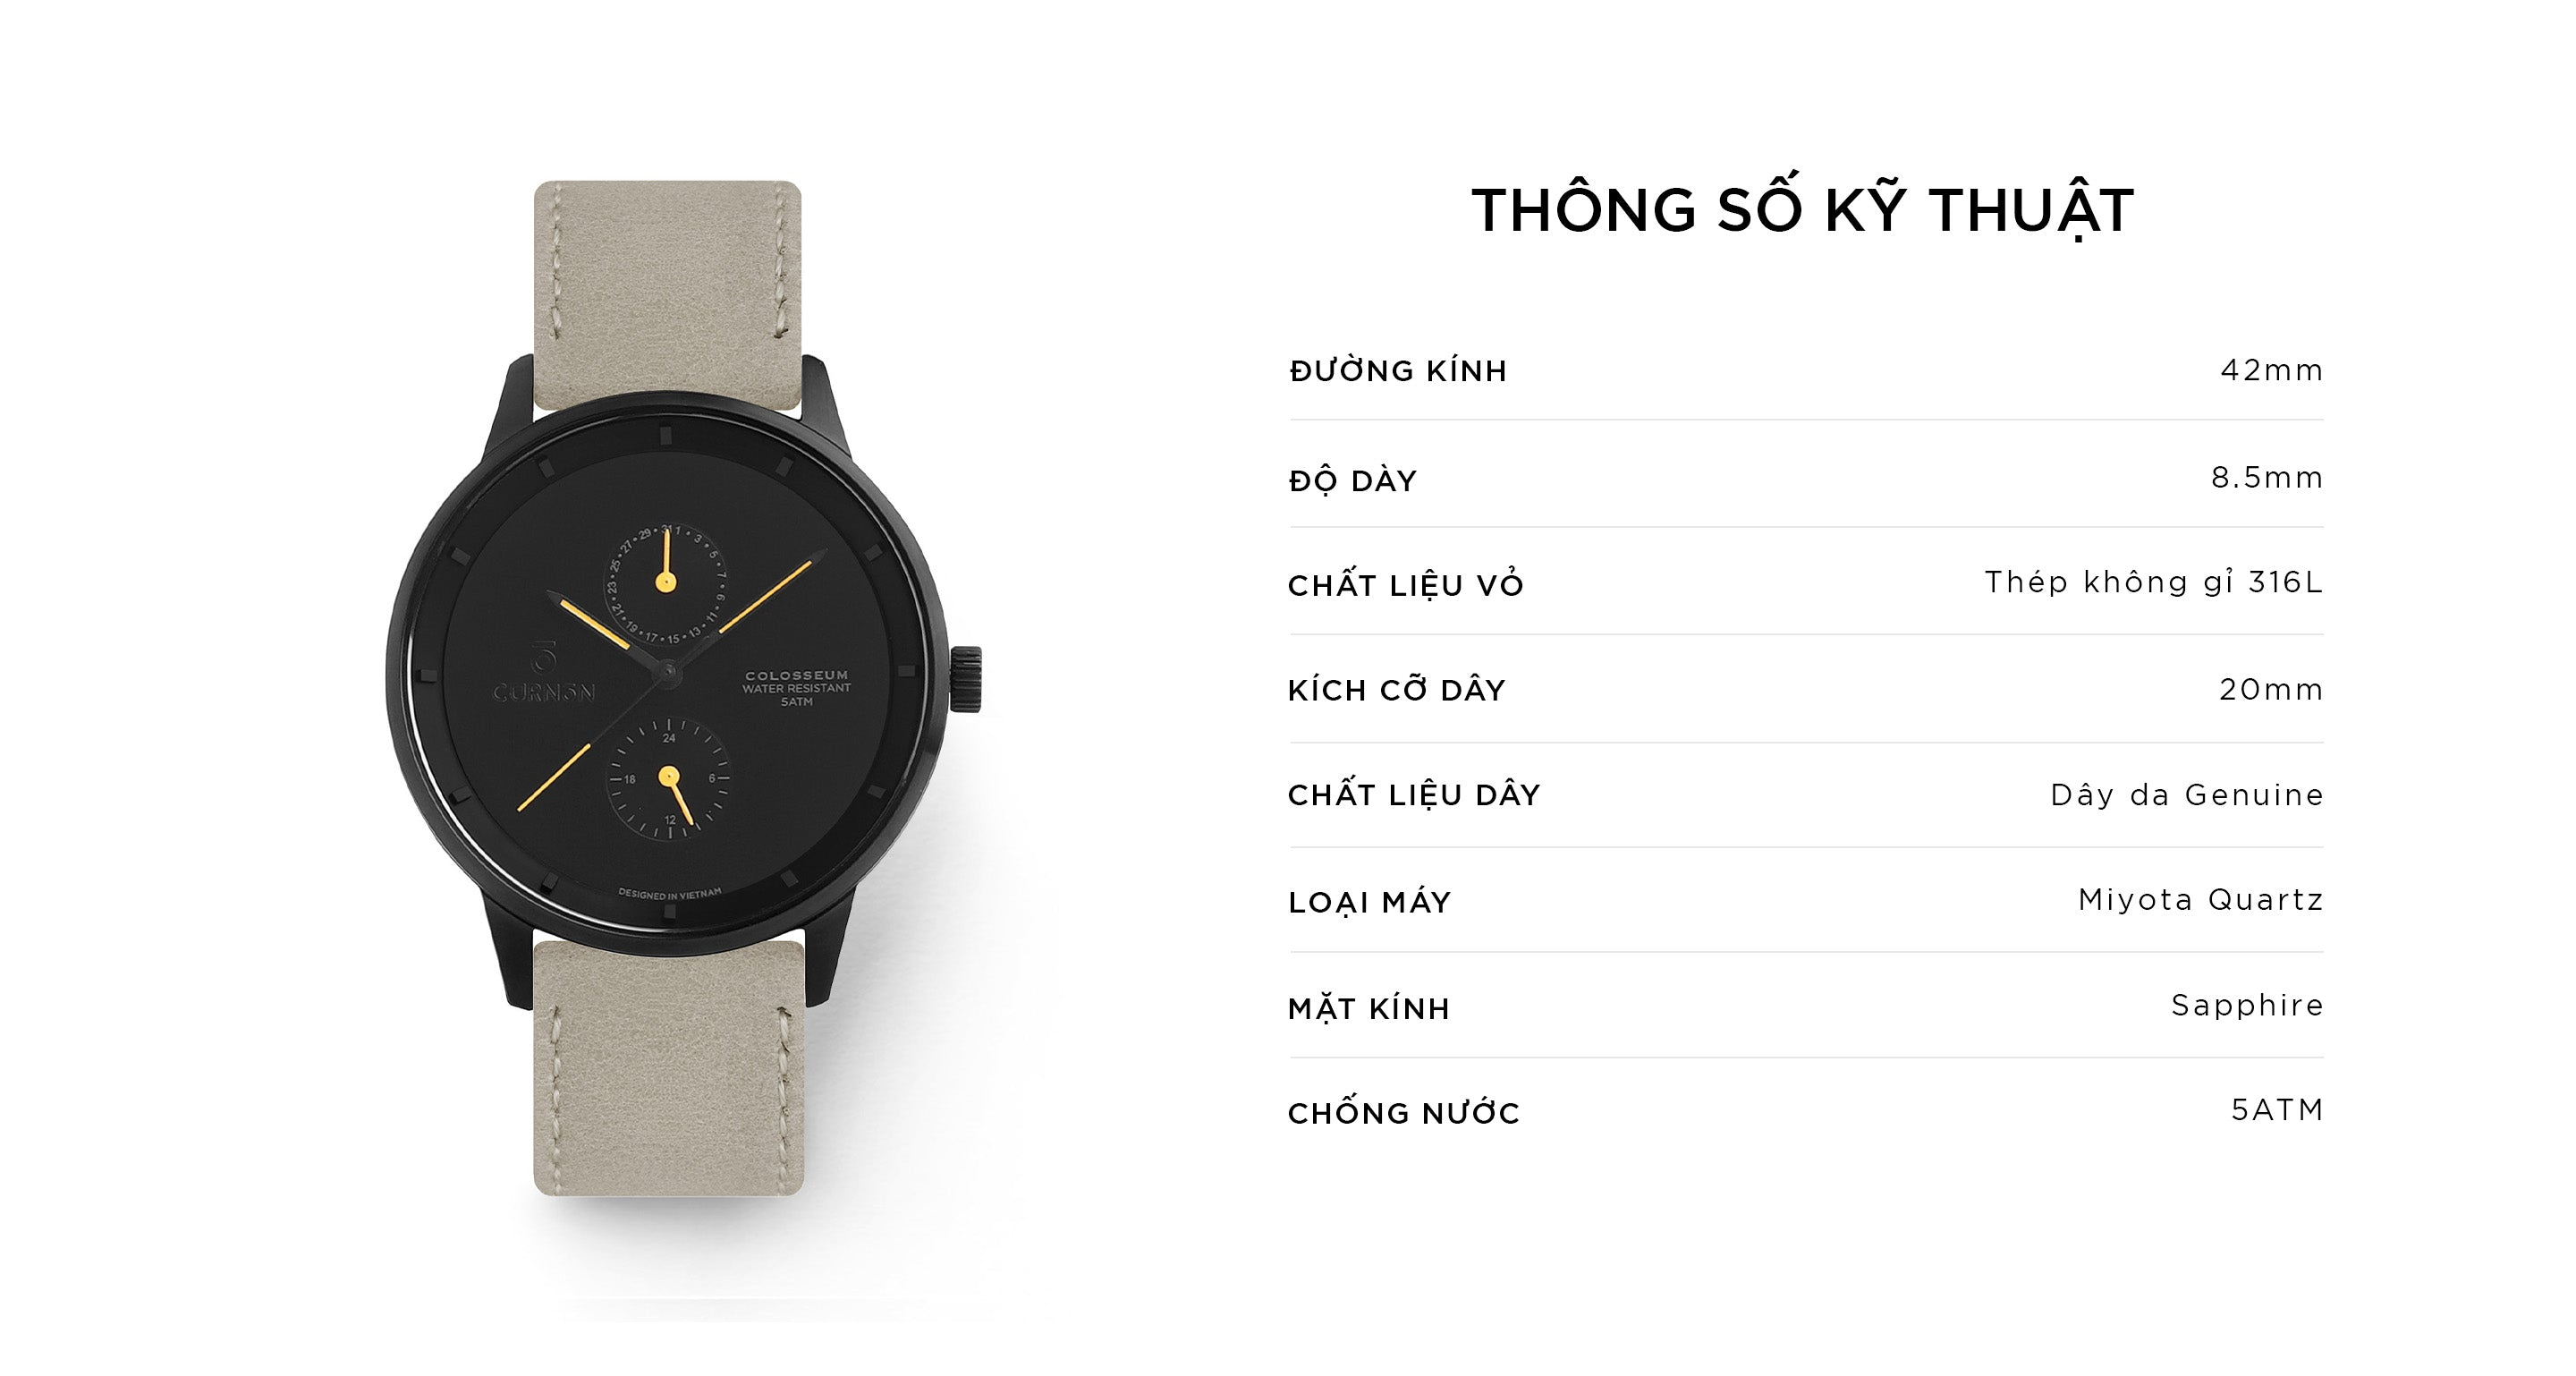 Đồng Hồ Thời Trang Colosseum Spear - Curnon Watch